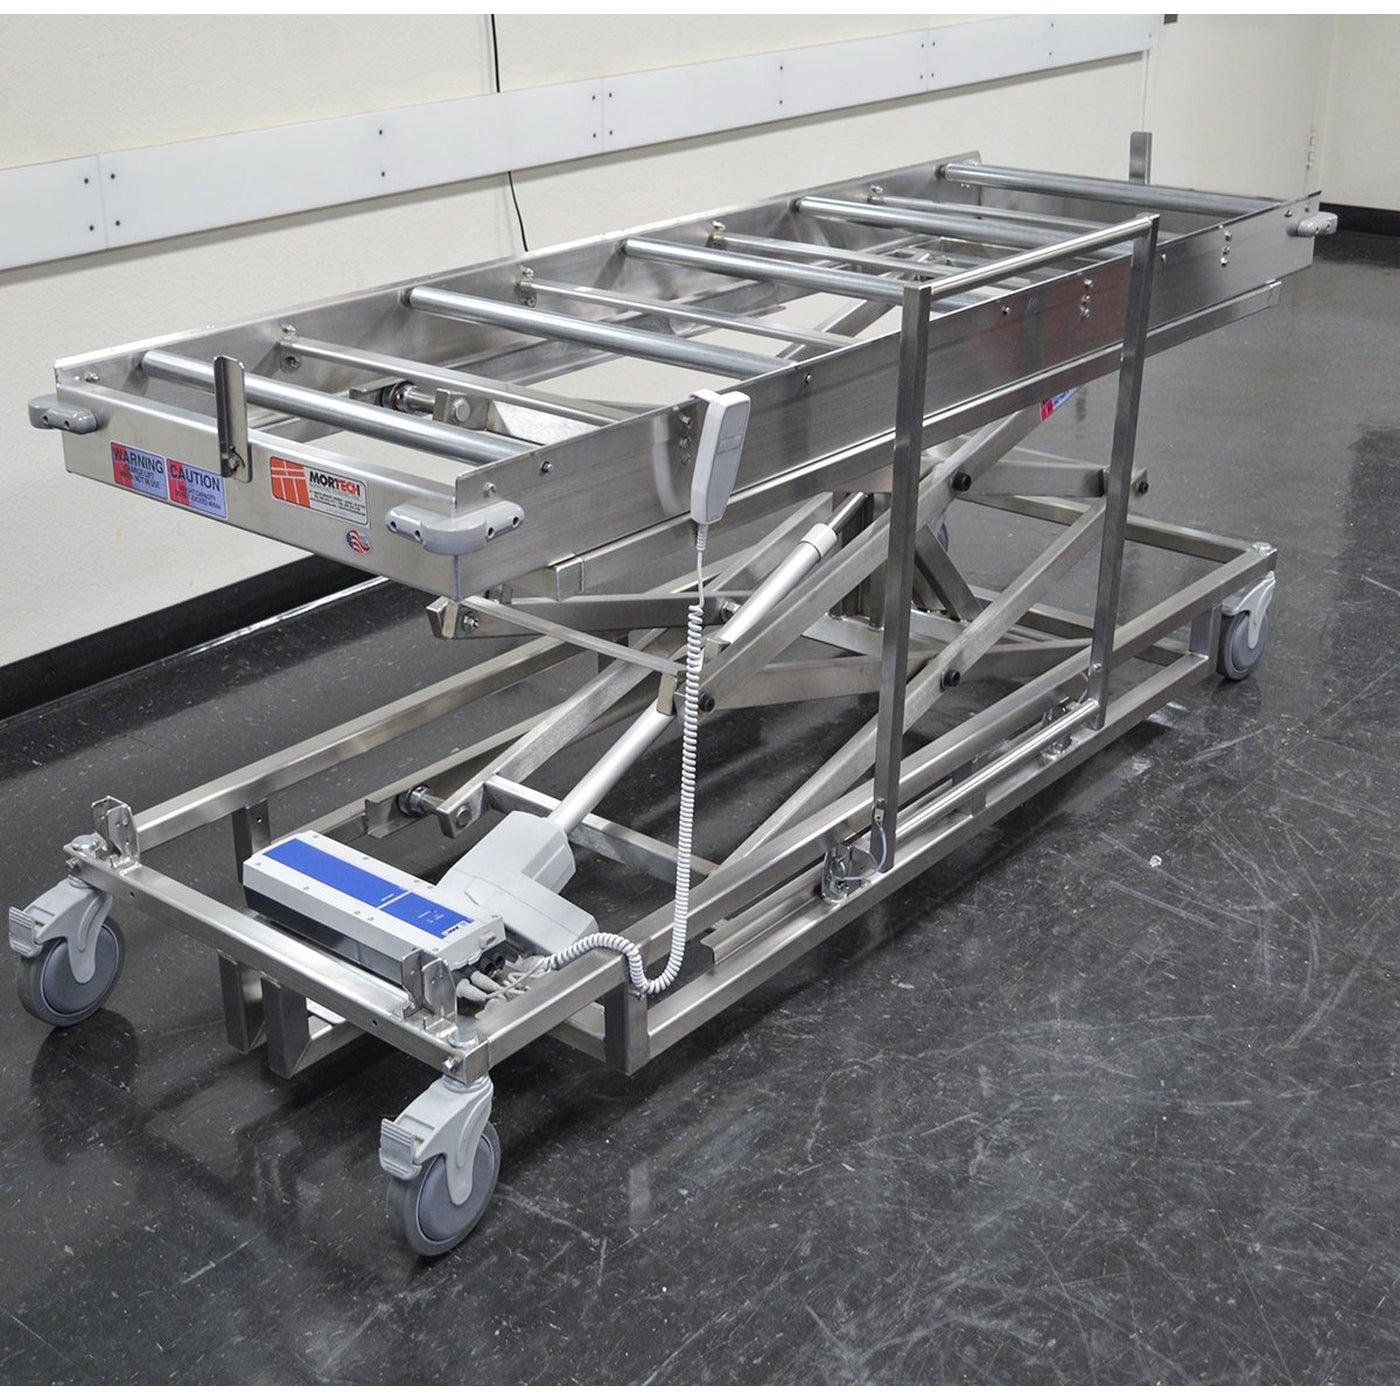 Portable Cadaver Scissor Lift with Rollers-Cadaver Handling & Storage Systems-Mortech Manufacturing Company Inc. Quality Stainless Steel Autopsy, Morgue, Funeral Home, Necropsy, Veterinary / Anatomy, Dissection Equipment and Accessories